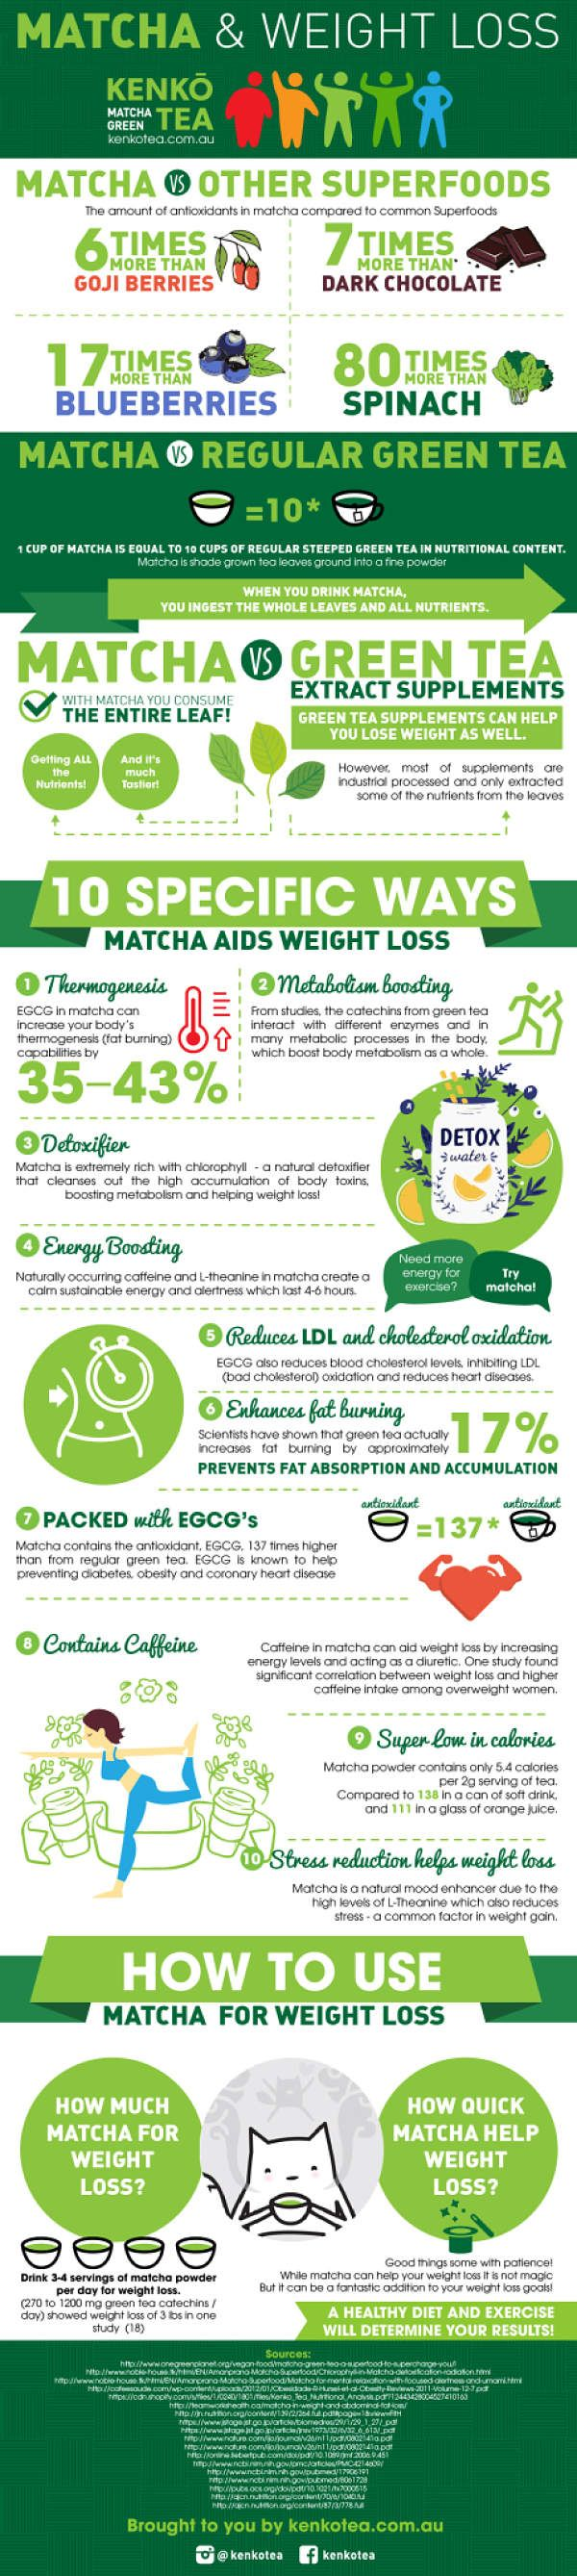 Matcha Green Tea health Benefits Infographic. Get your matcha at: http://amzn.to/297Wuxo